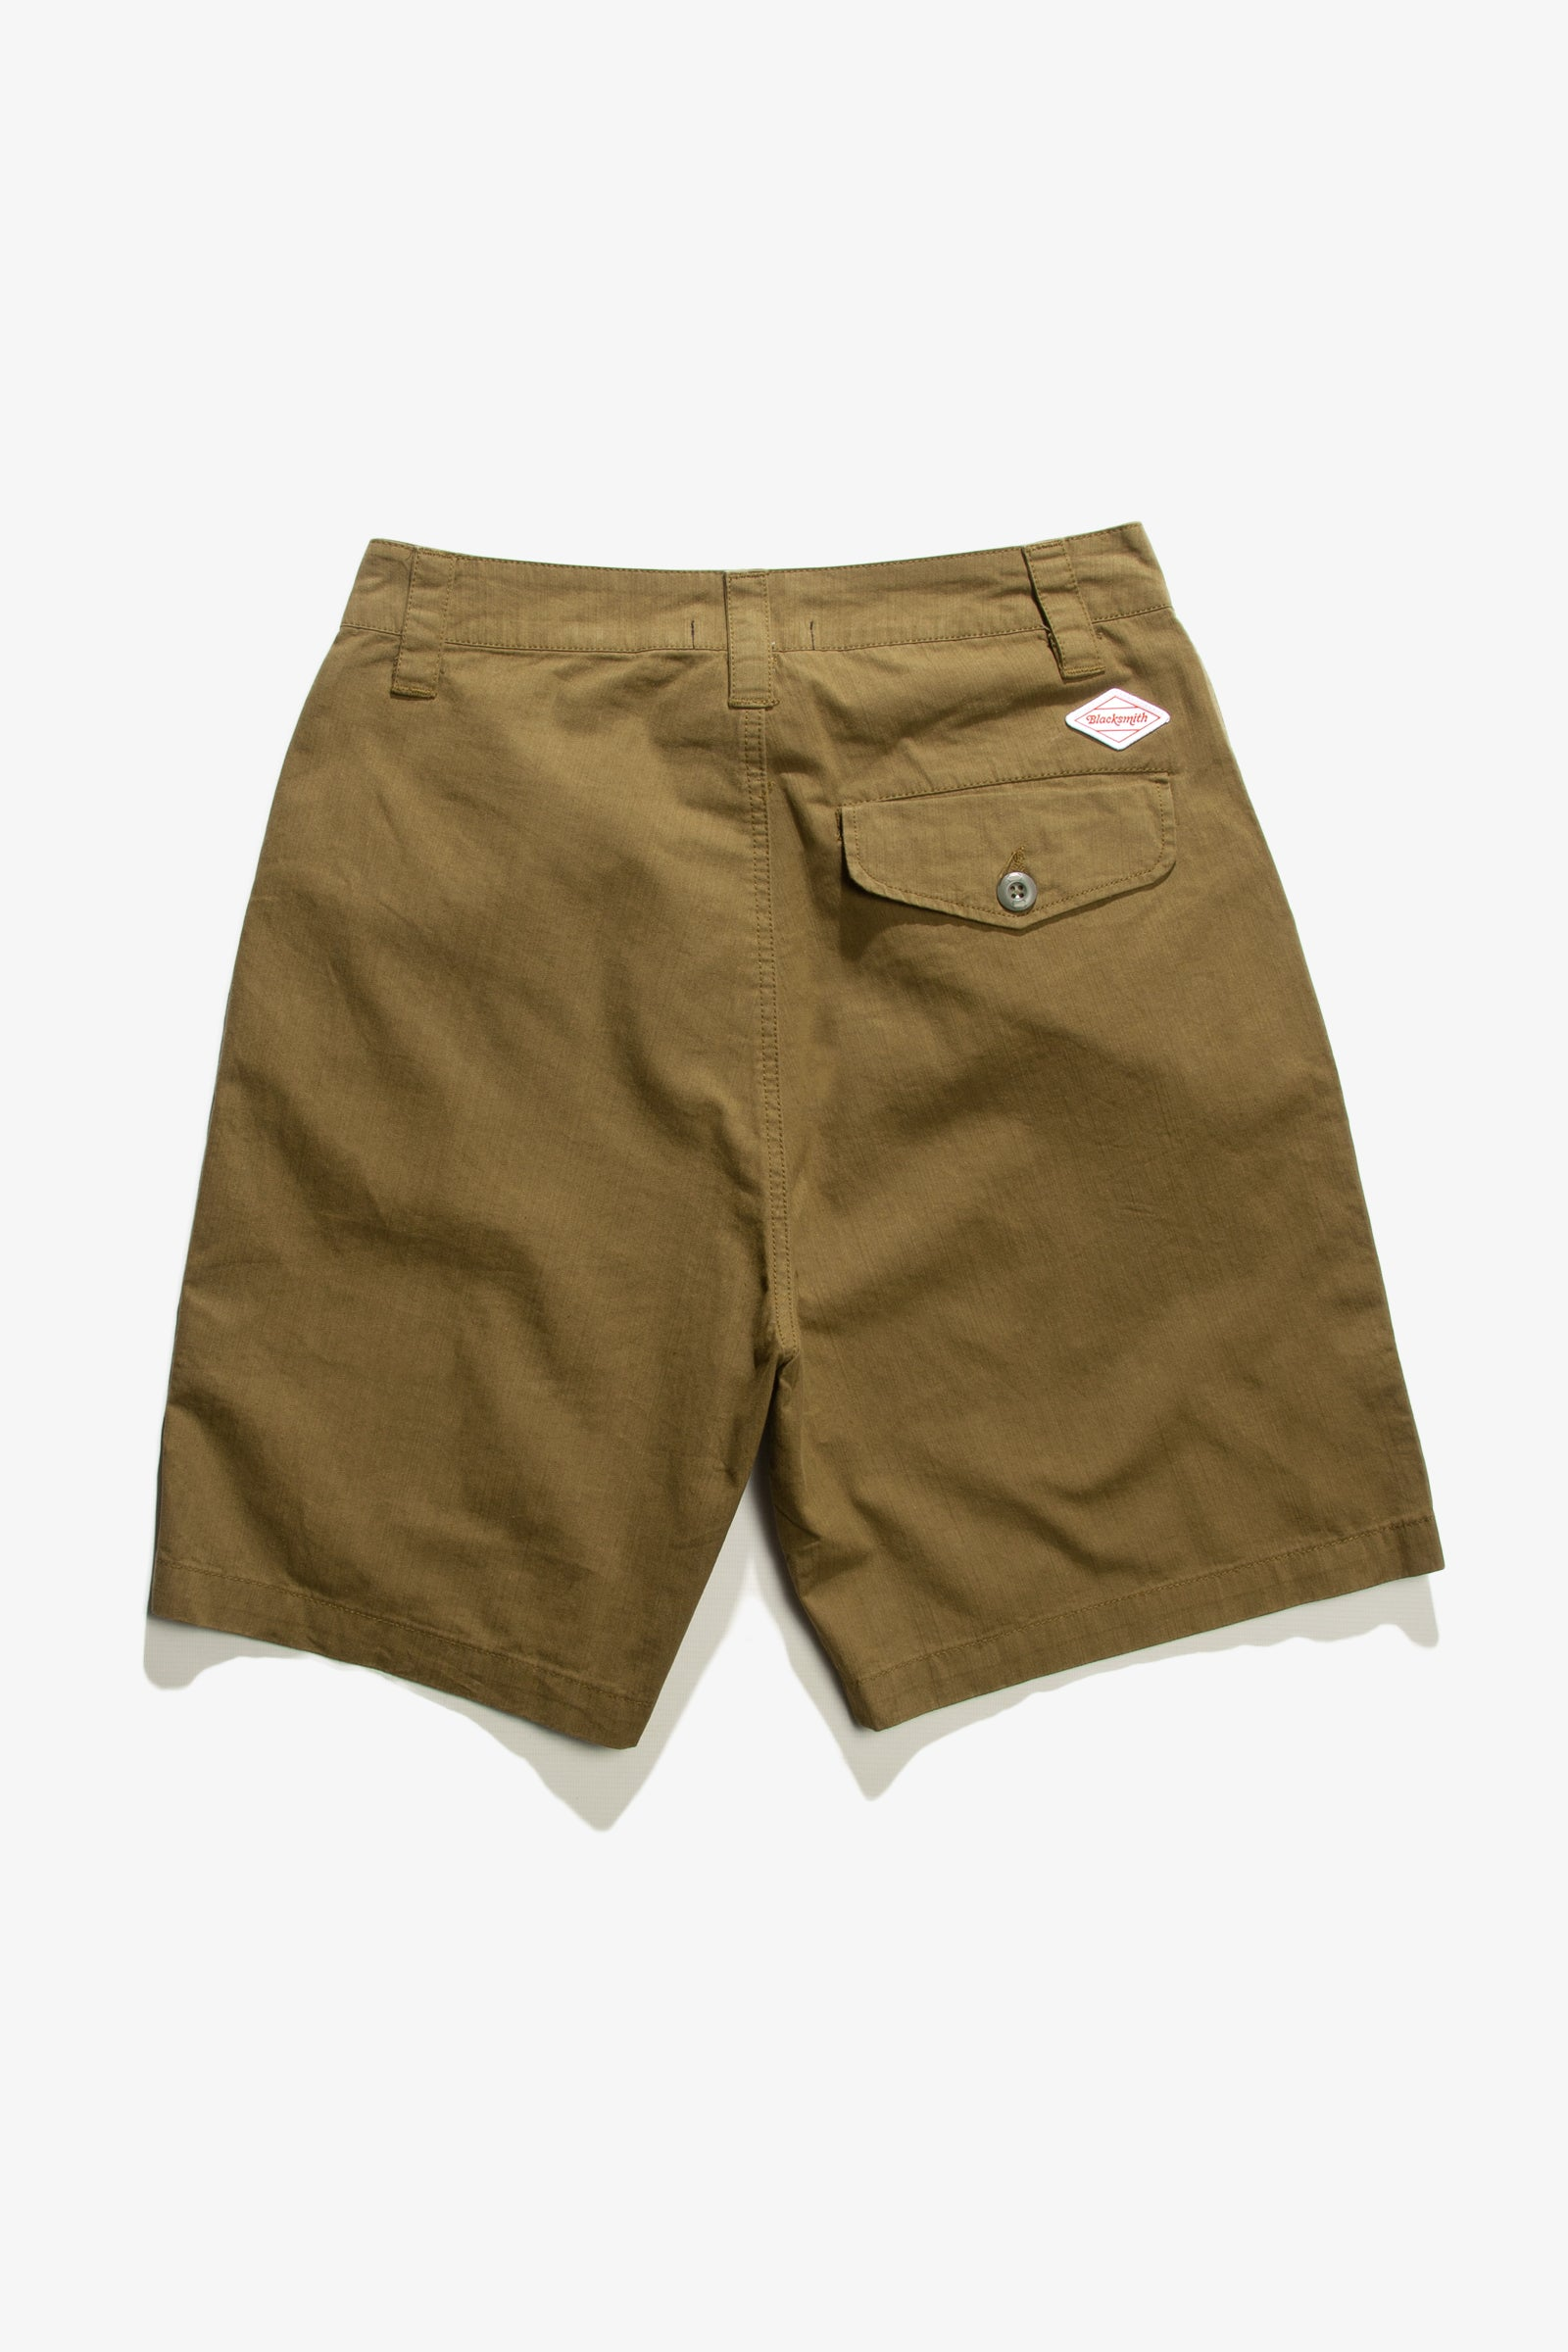 Blacksmith - Sateen Camping Shorts - Olive